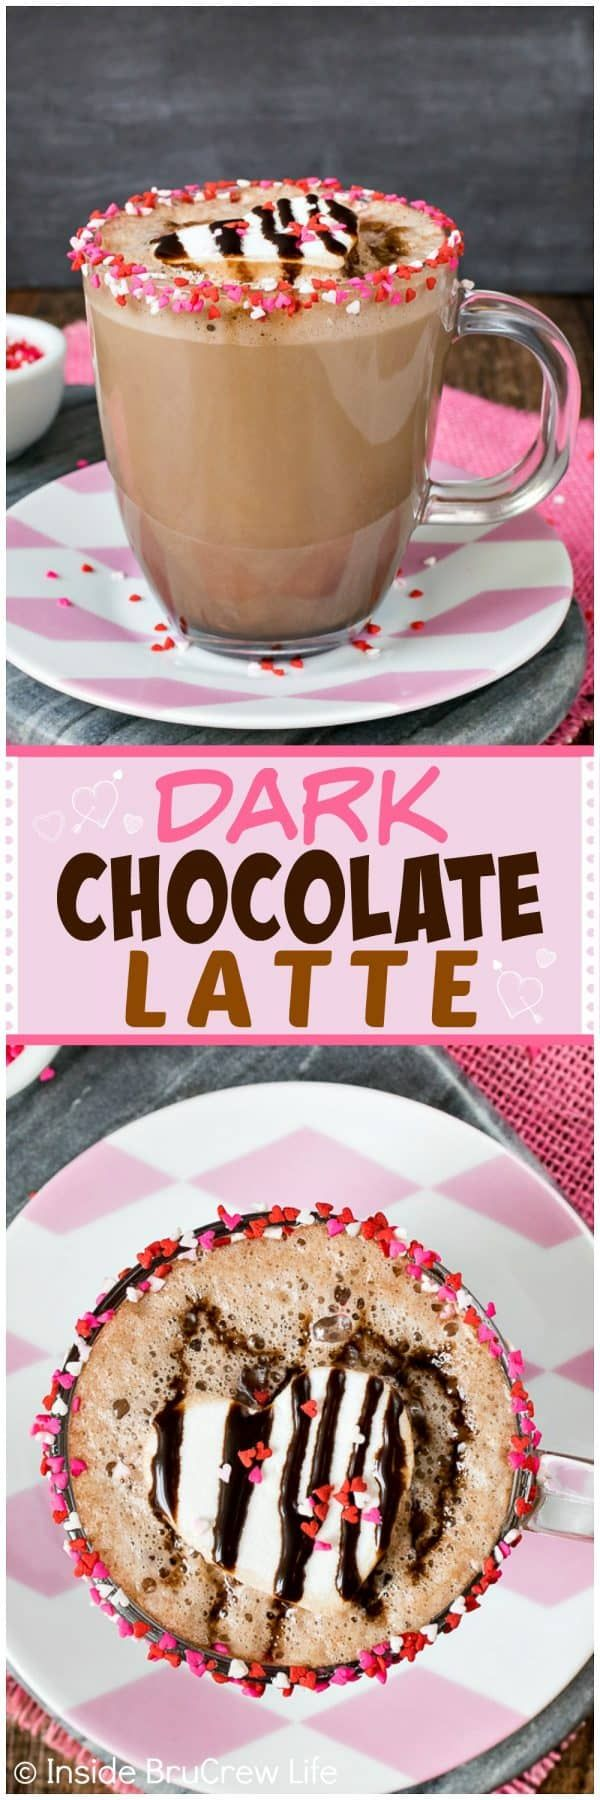 Dark Chocolate Latte - a rim of sprinkles and two times the chocolate makes this a delicious coffee drink. Easy recipe to make at home to save money. #coffee #chocolate #latte #drink #homemade #coffeeshop